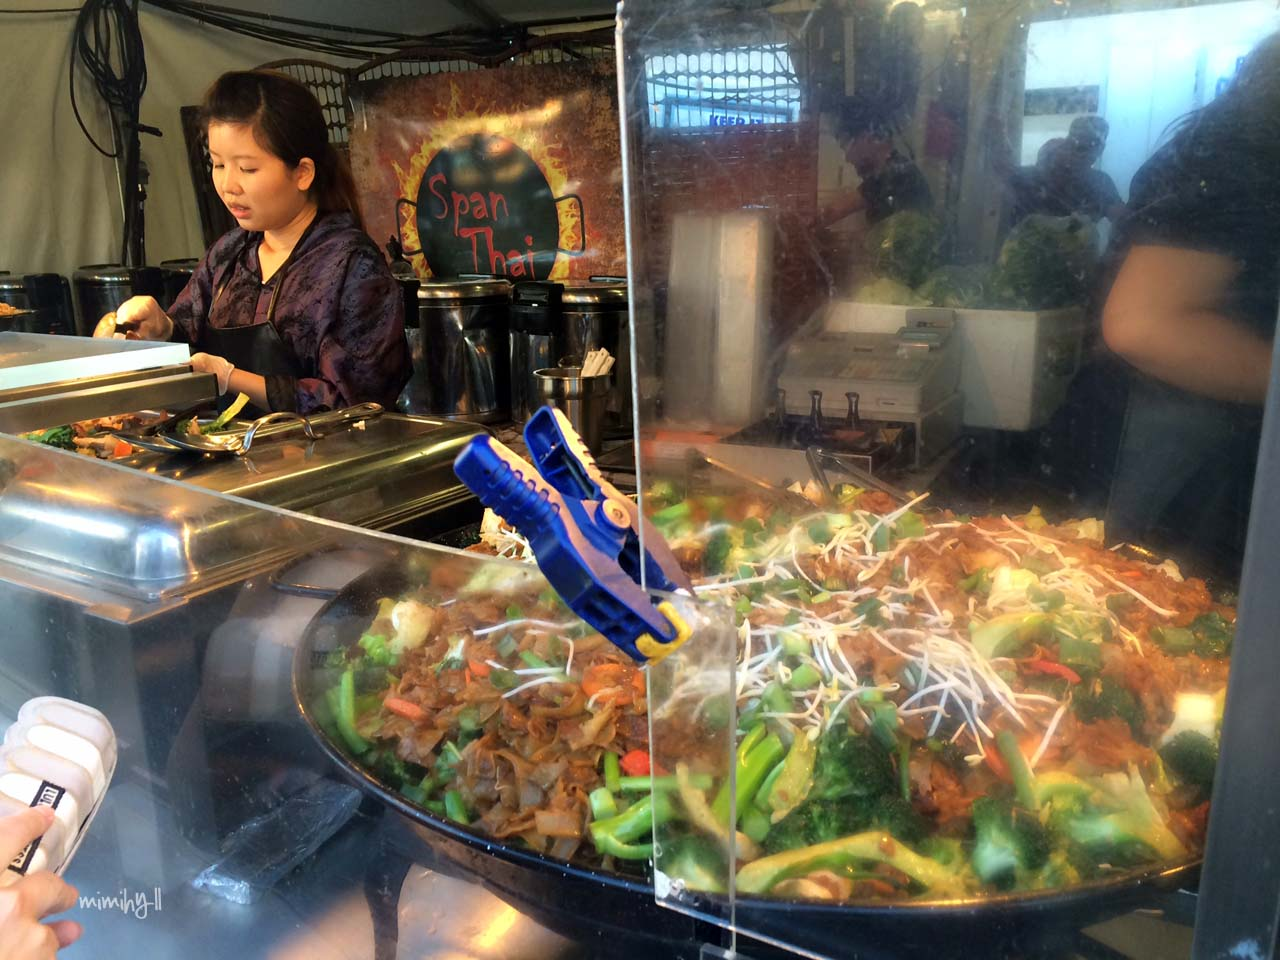 Span Thai Woks, Night Noodle Markets